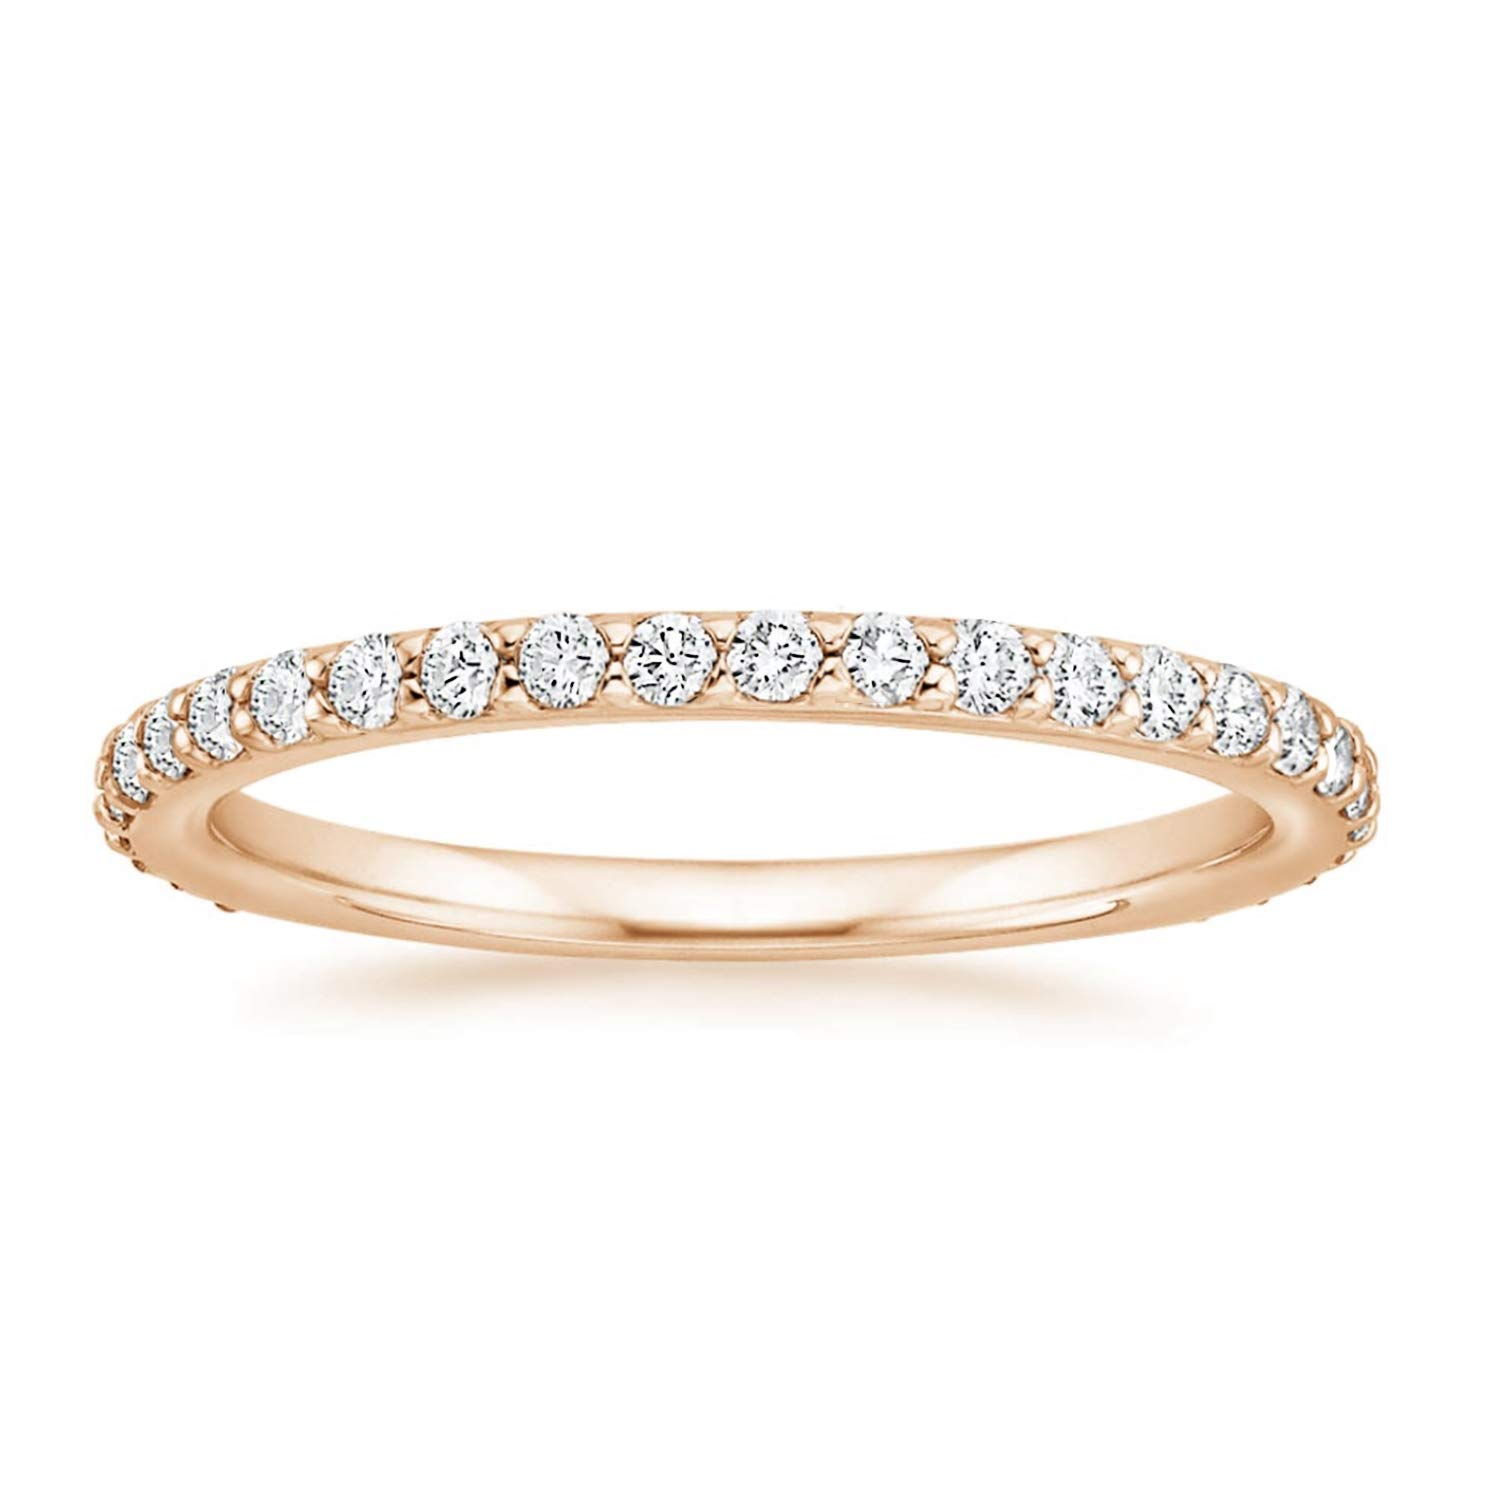 PAVOI 14K Gold Plated Sterling Silver Cubic Zirconia Diamond Stackable Eternity Bands for Women